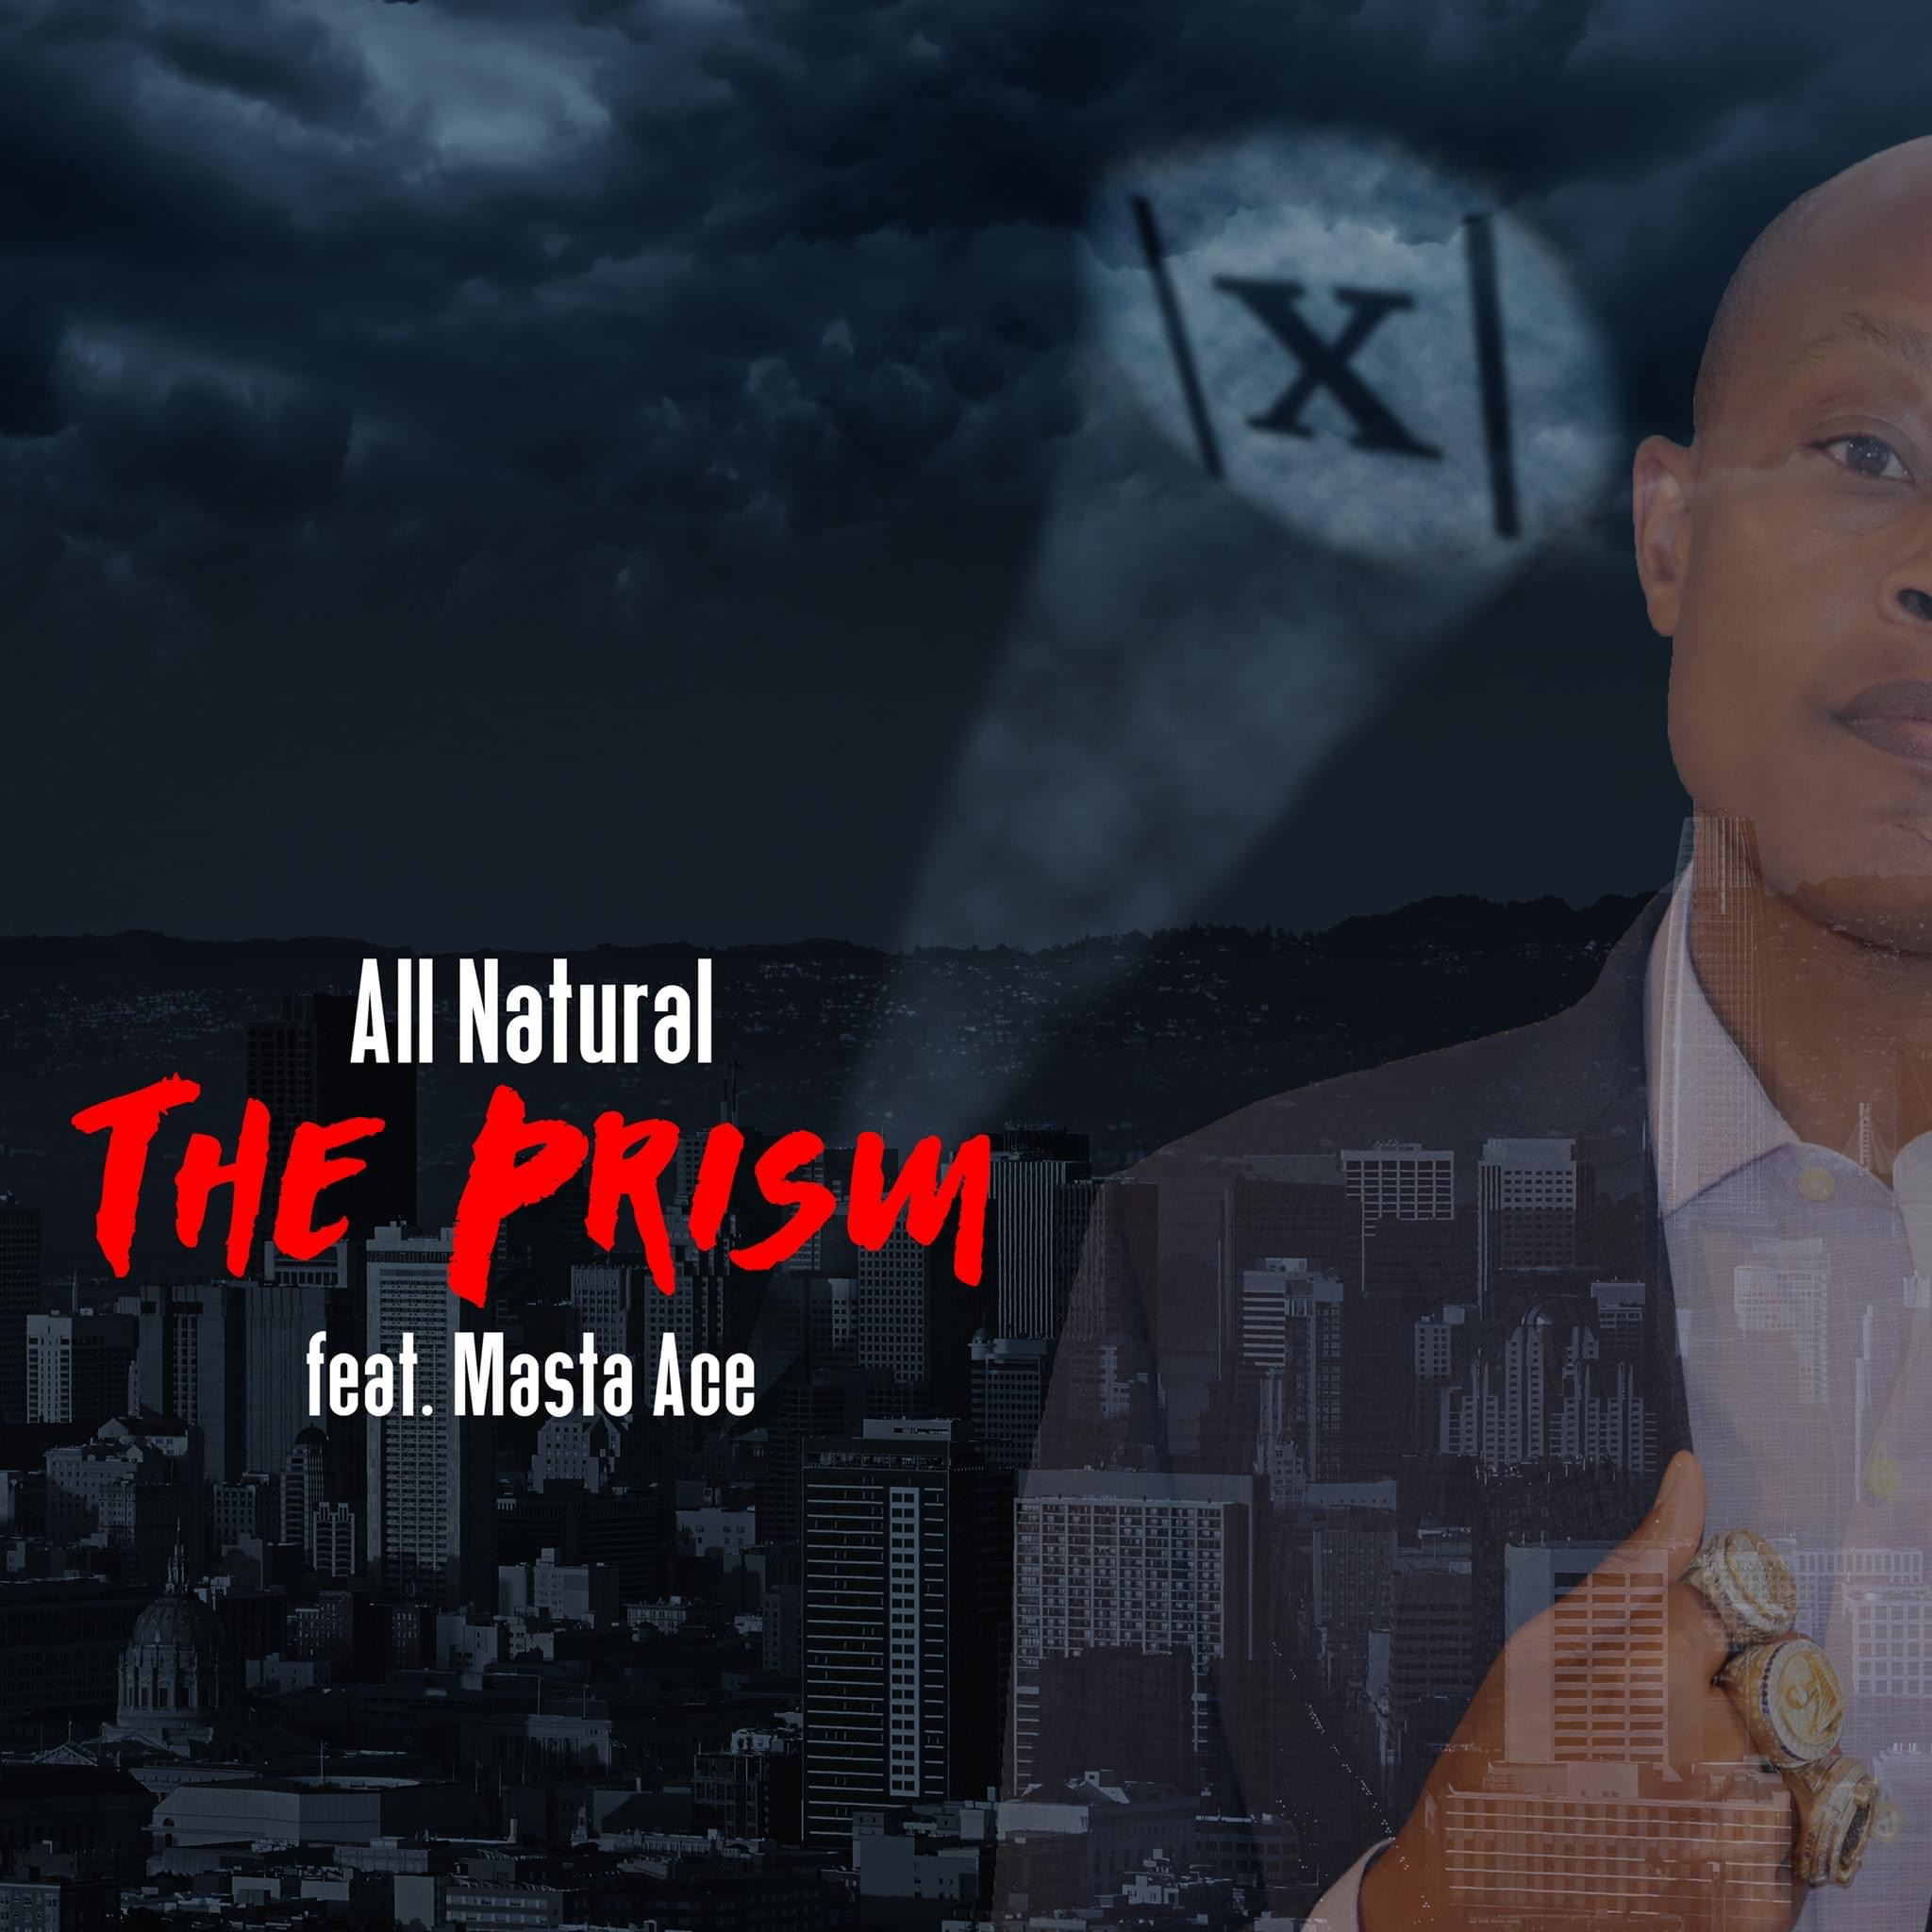 All Natural - The Prism feat. Masta Ace